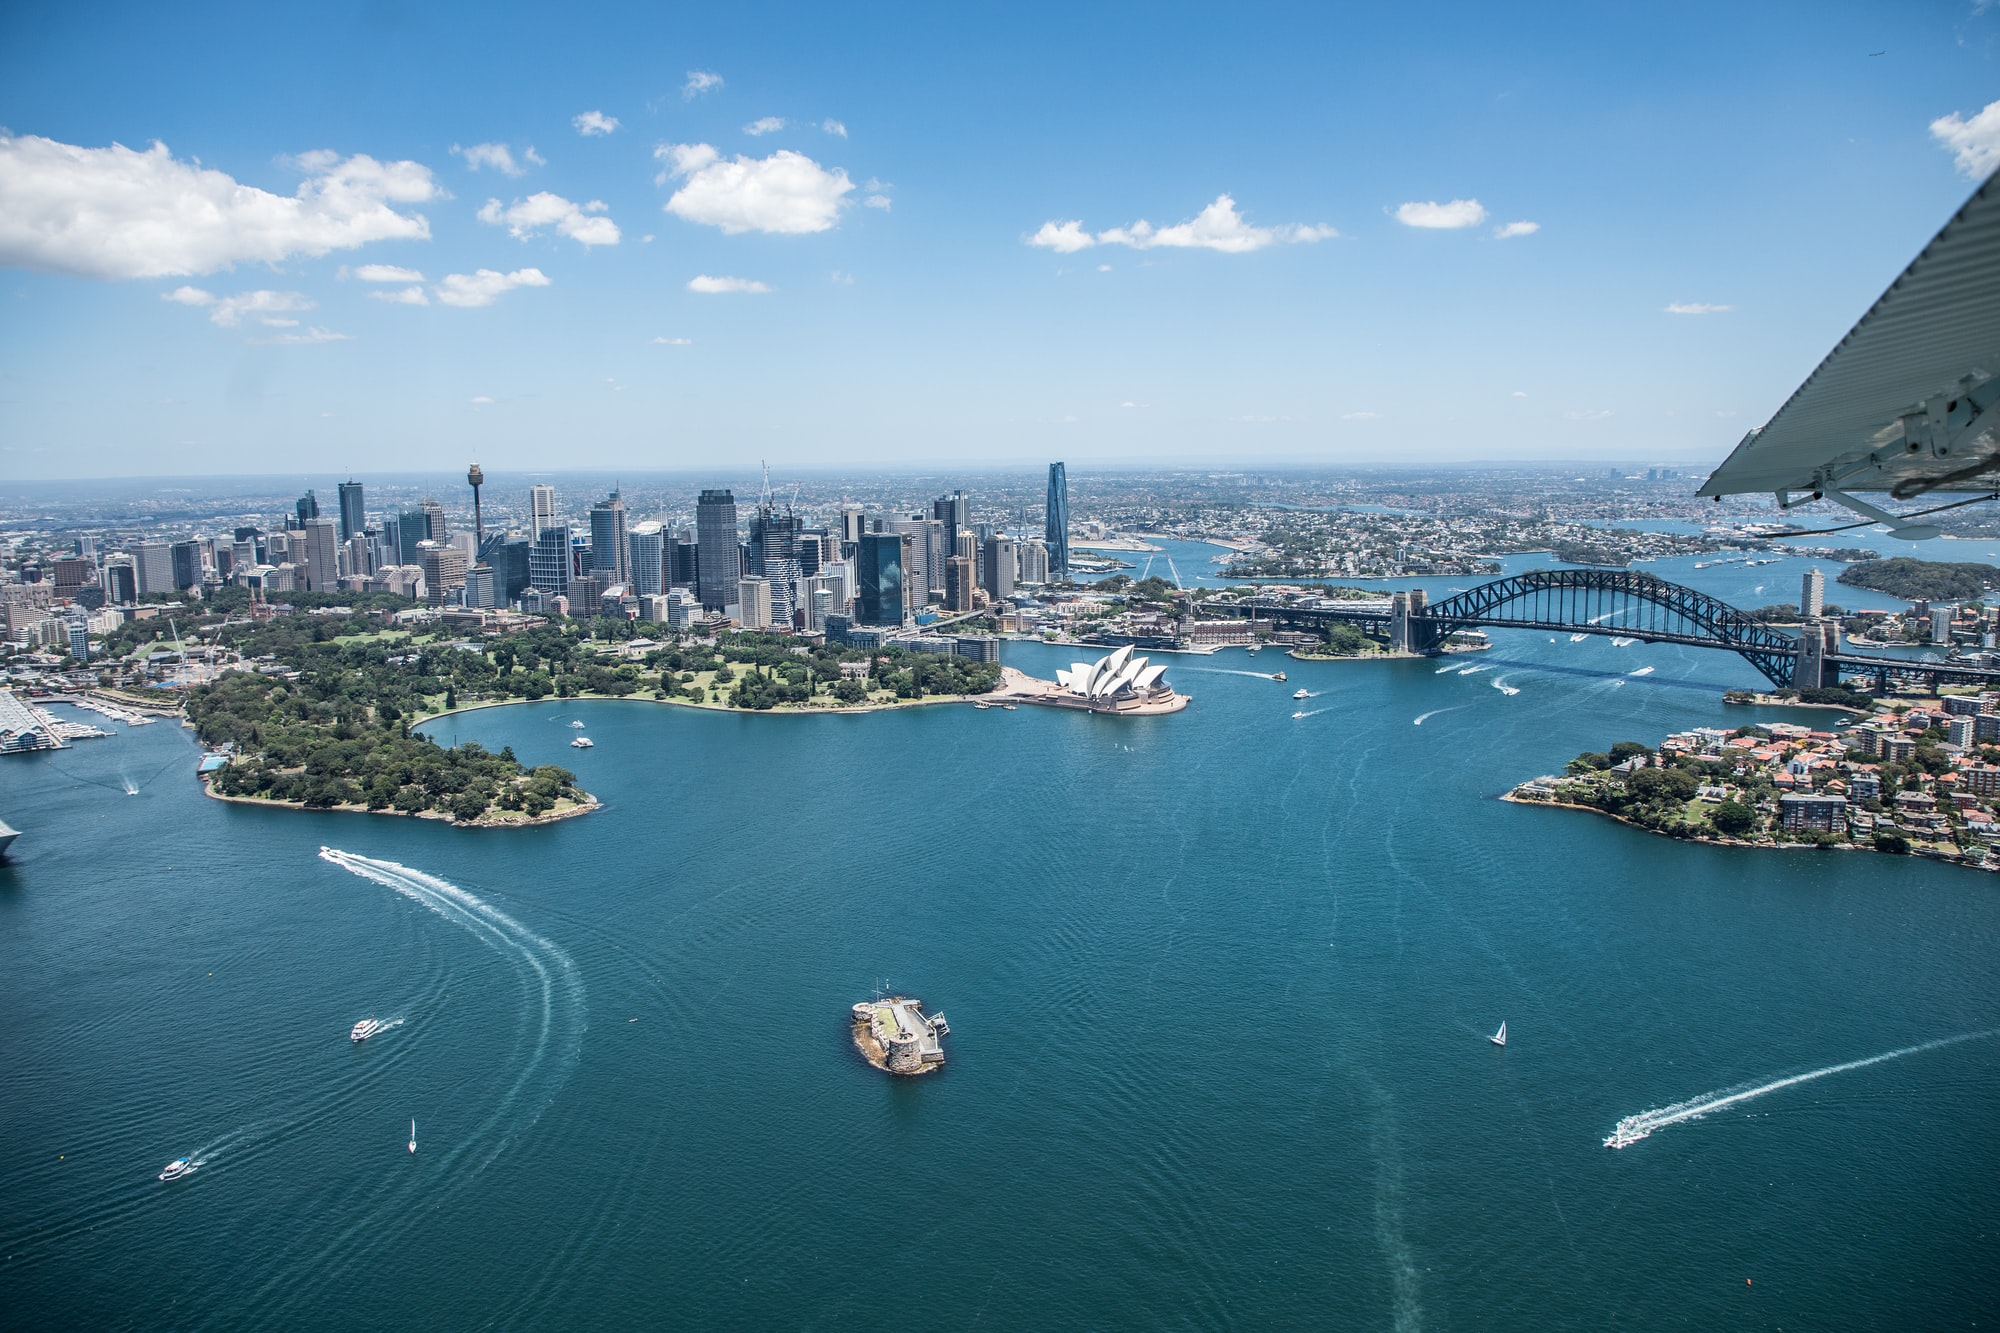 Top 30 places to visit in Sydney: Landmarks that will wow you for sure